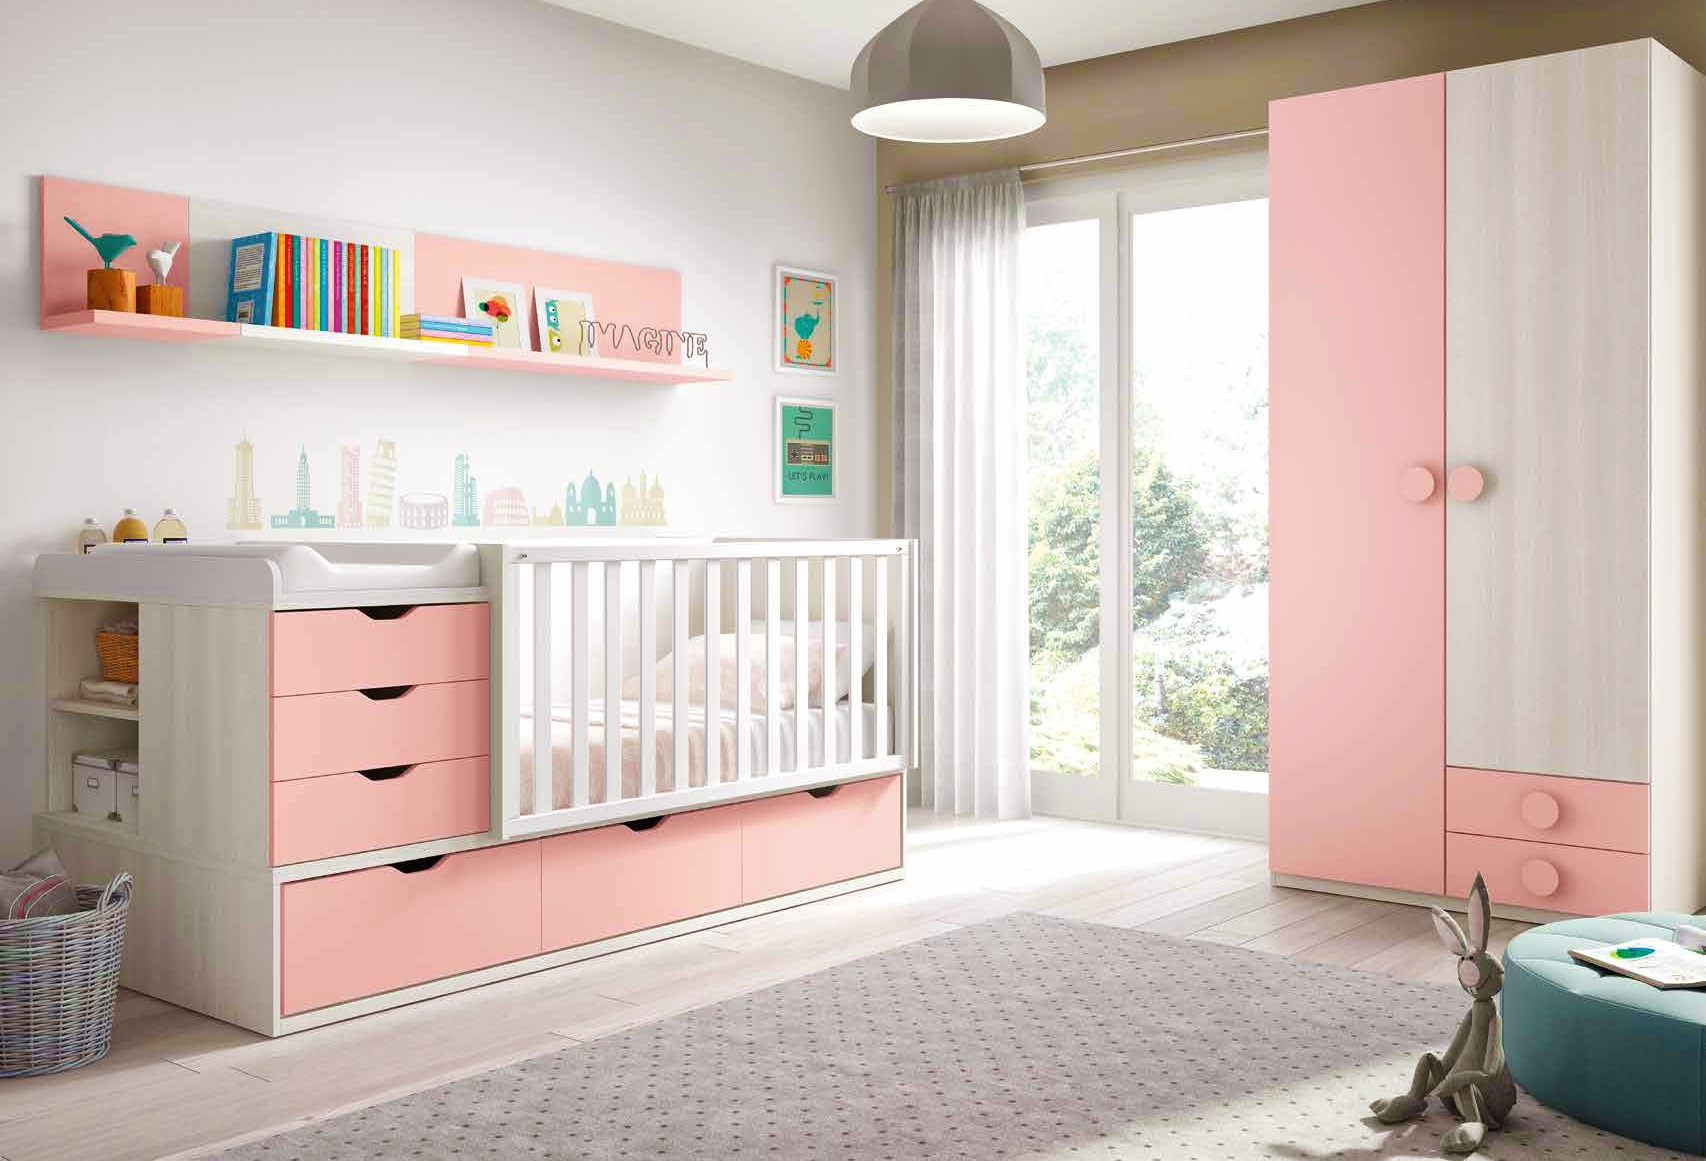 chambre de b b fille compl te avec lit volutif On photo de chambre de bebe fille